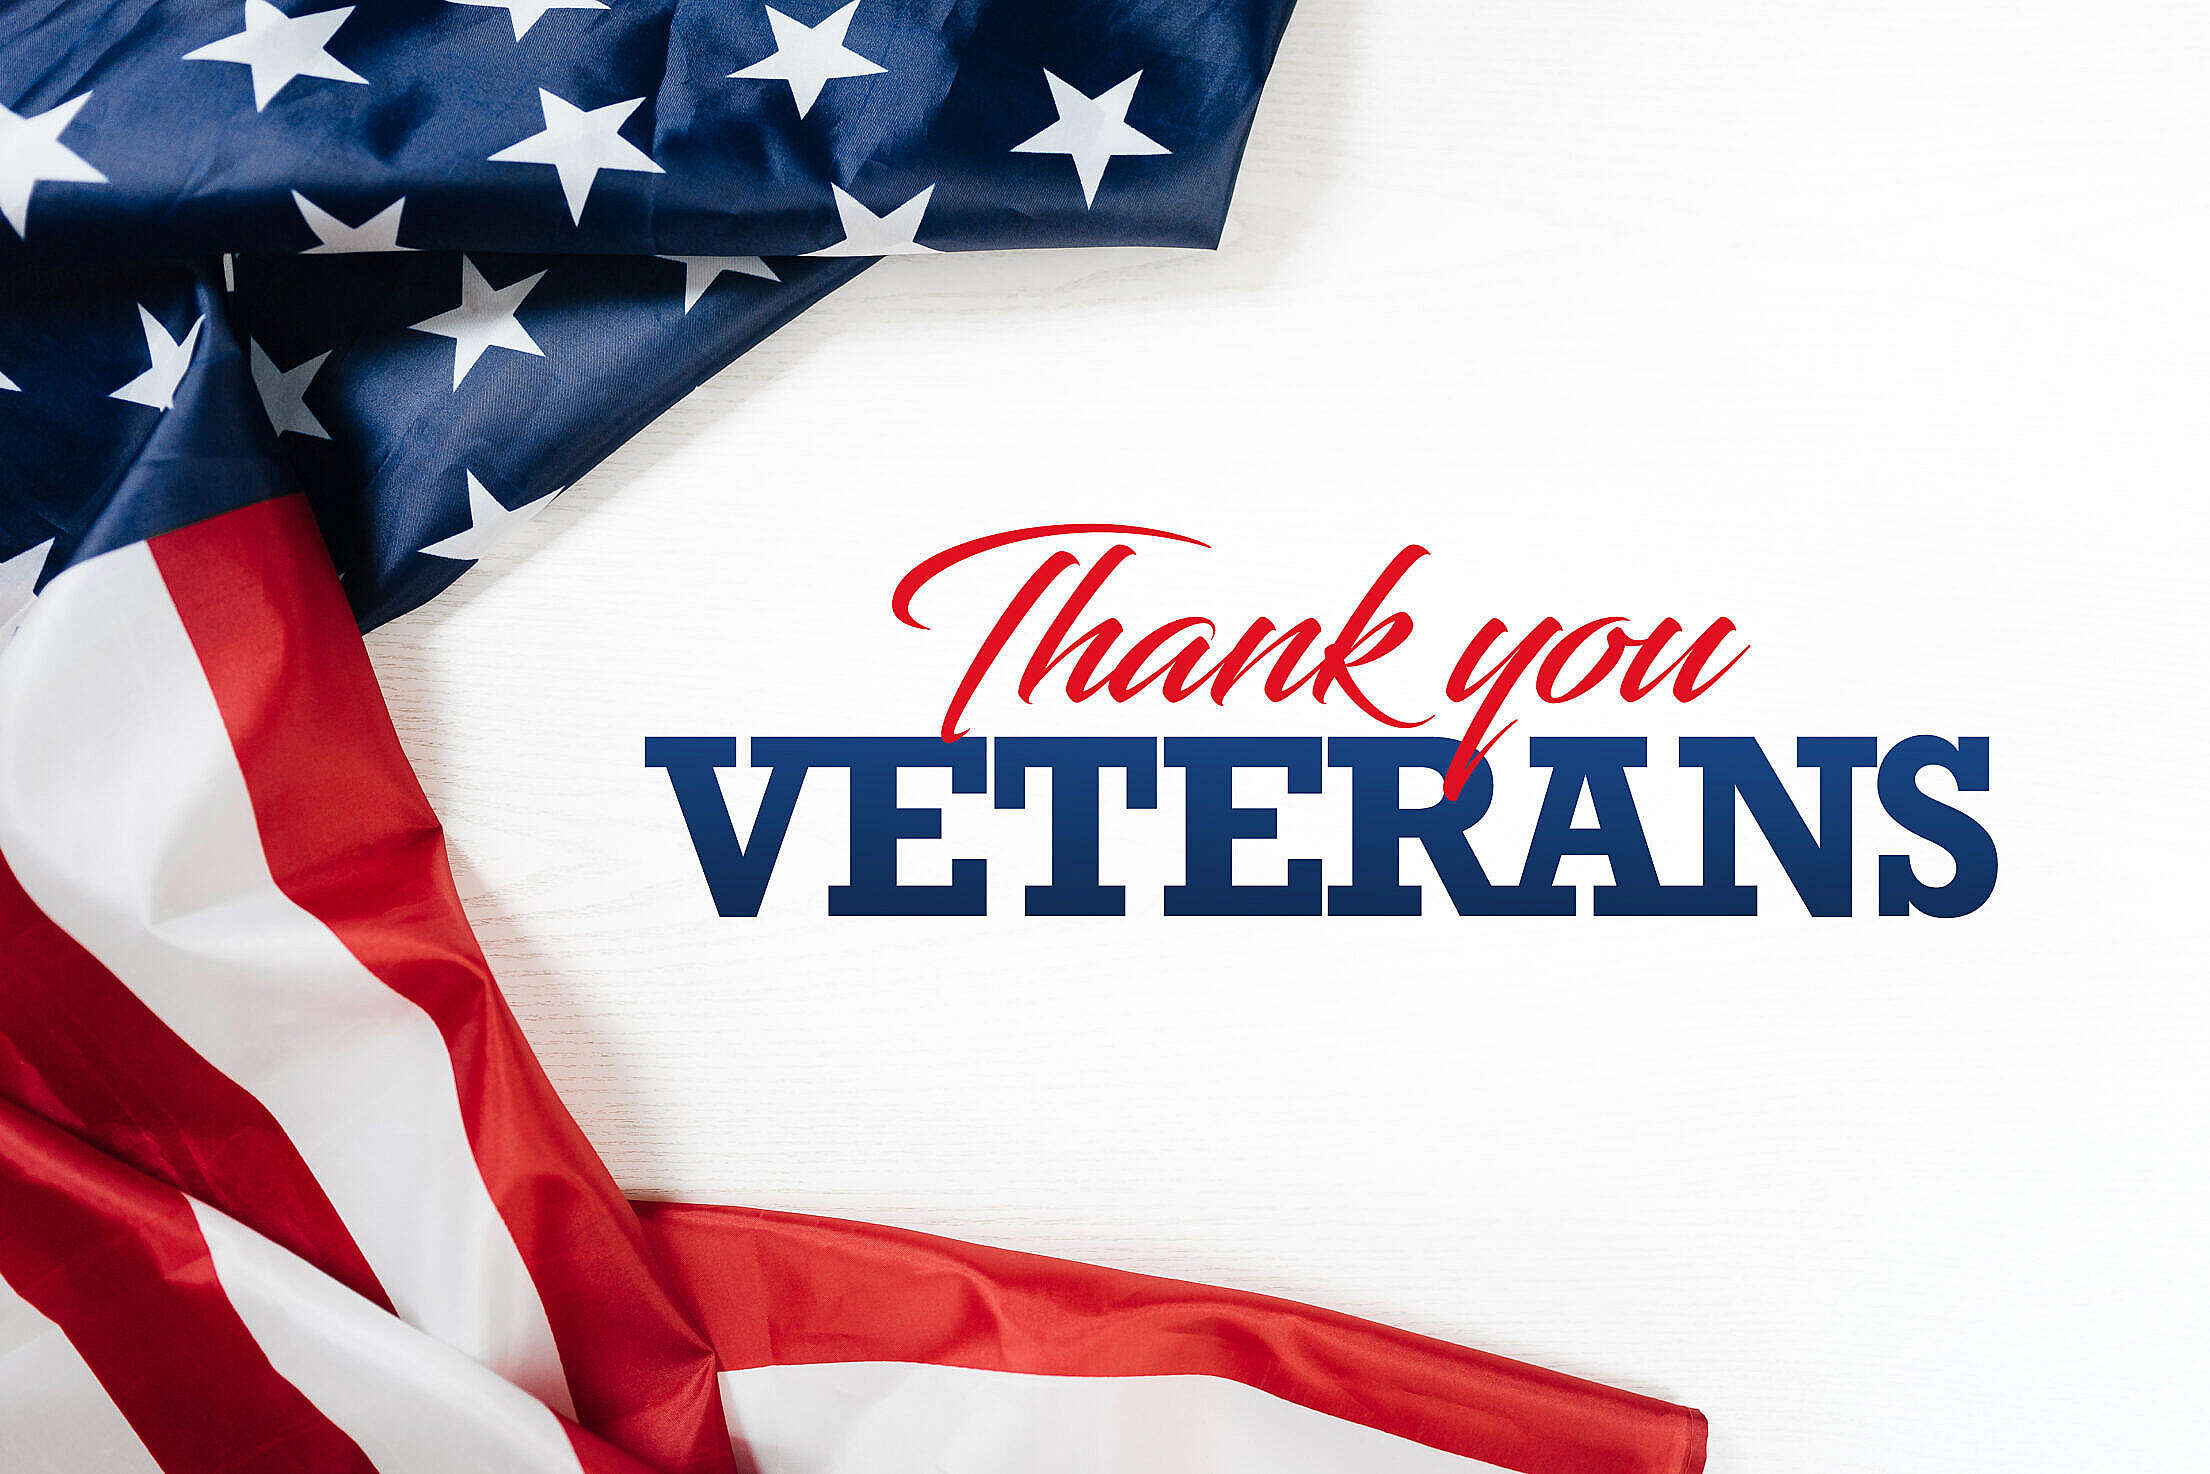 Thank You Veterans Letterings Free Stock Photo